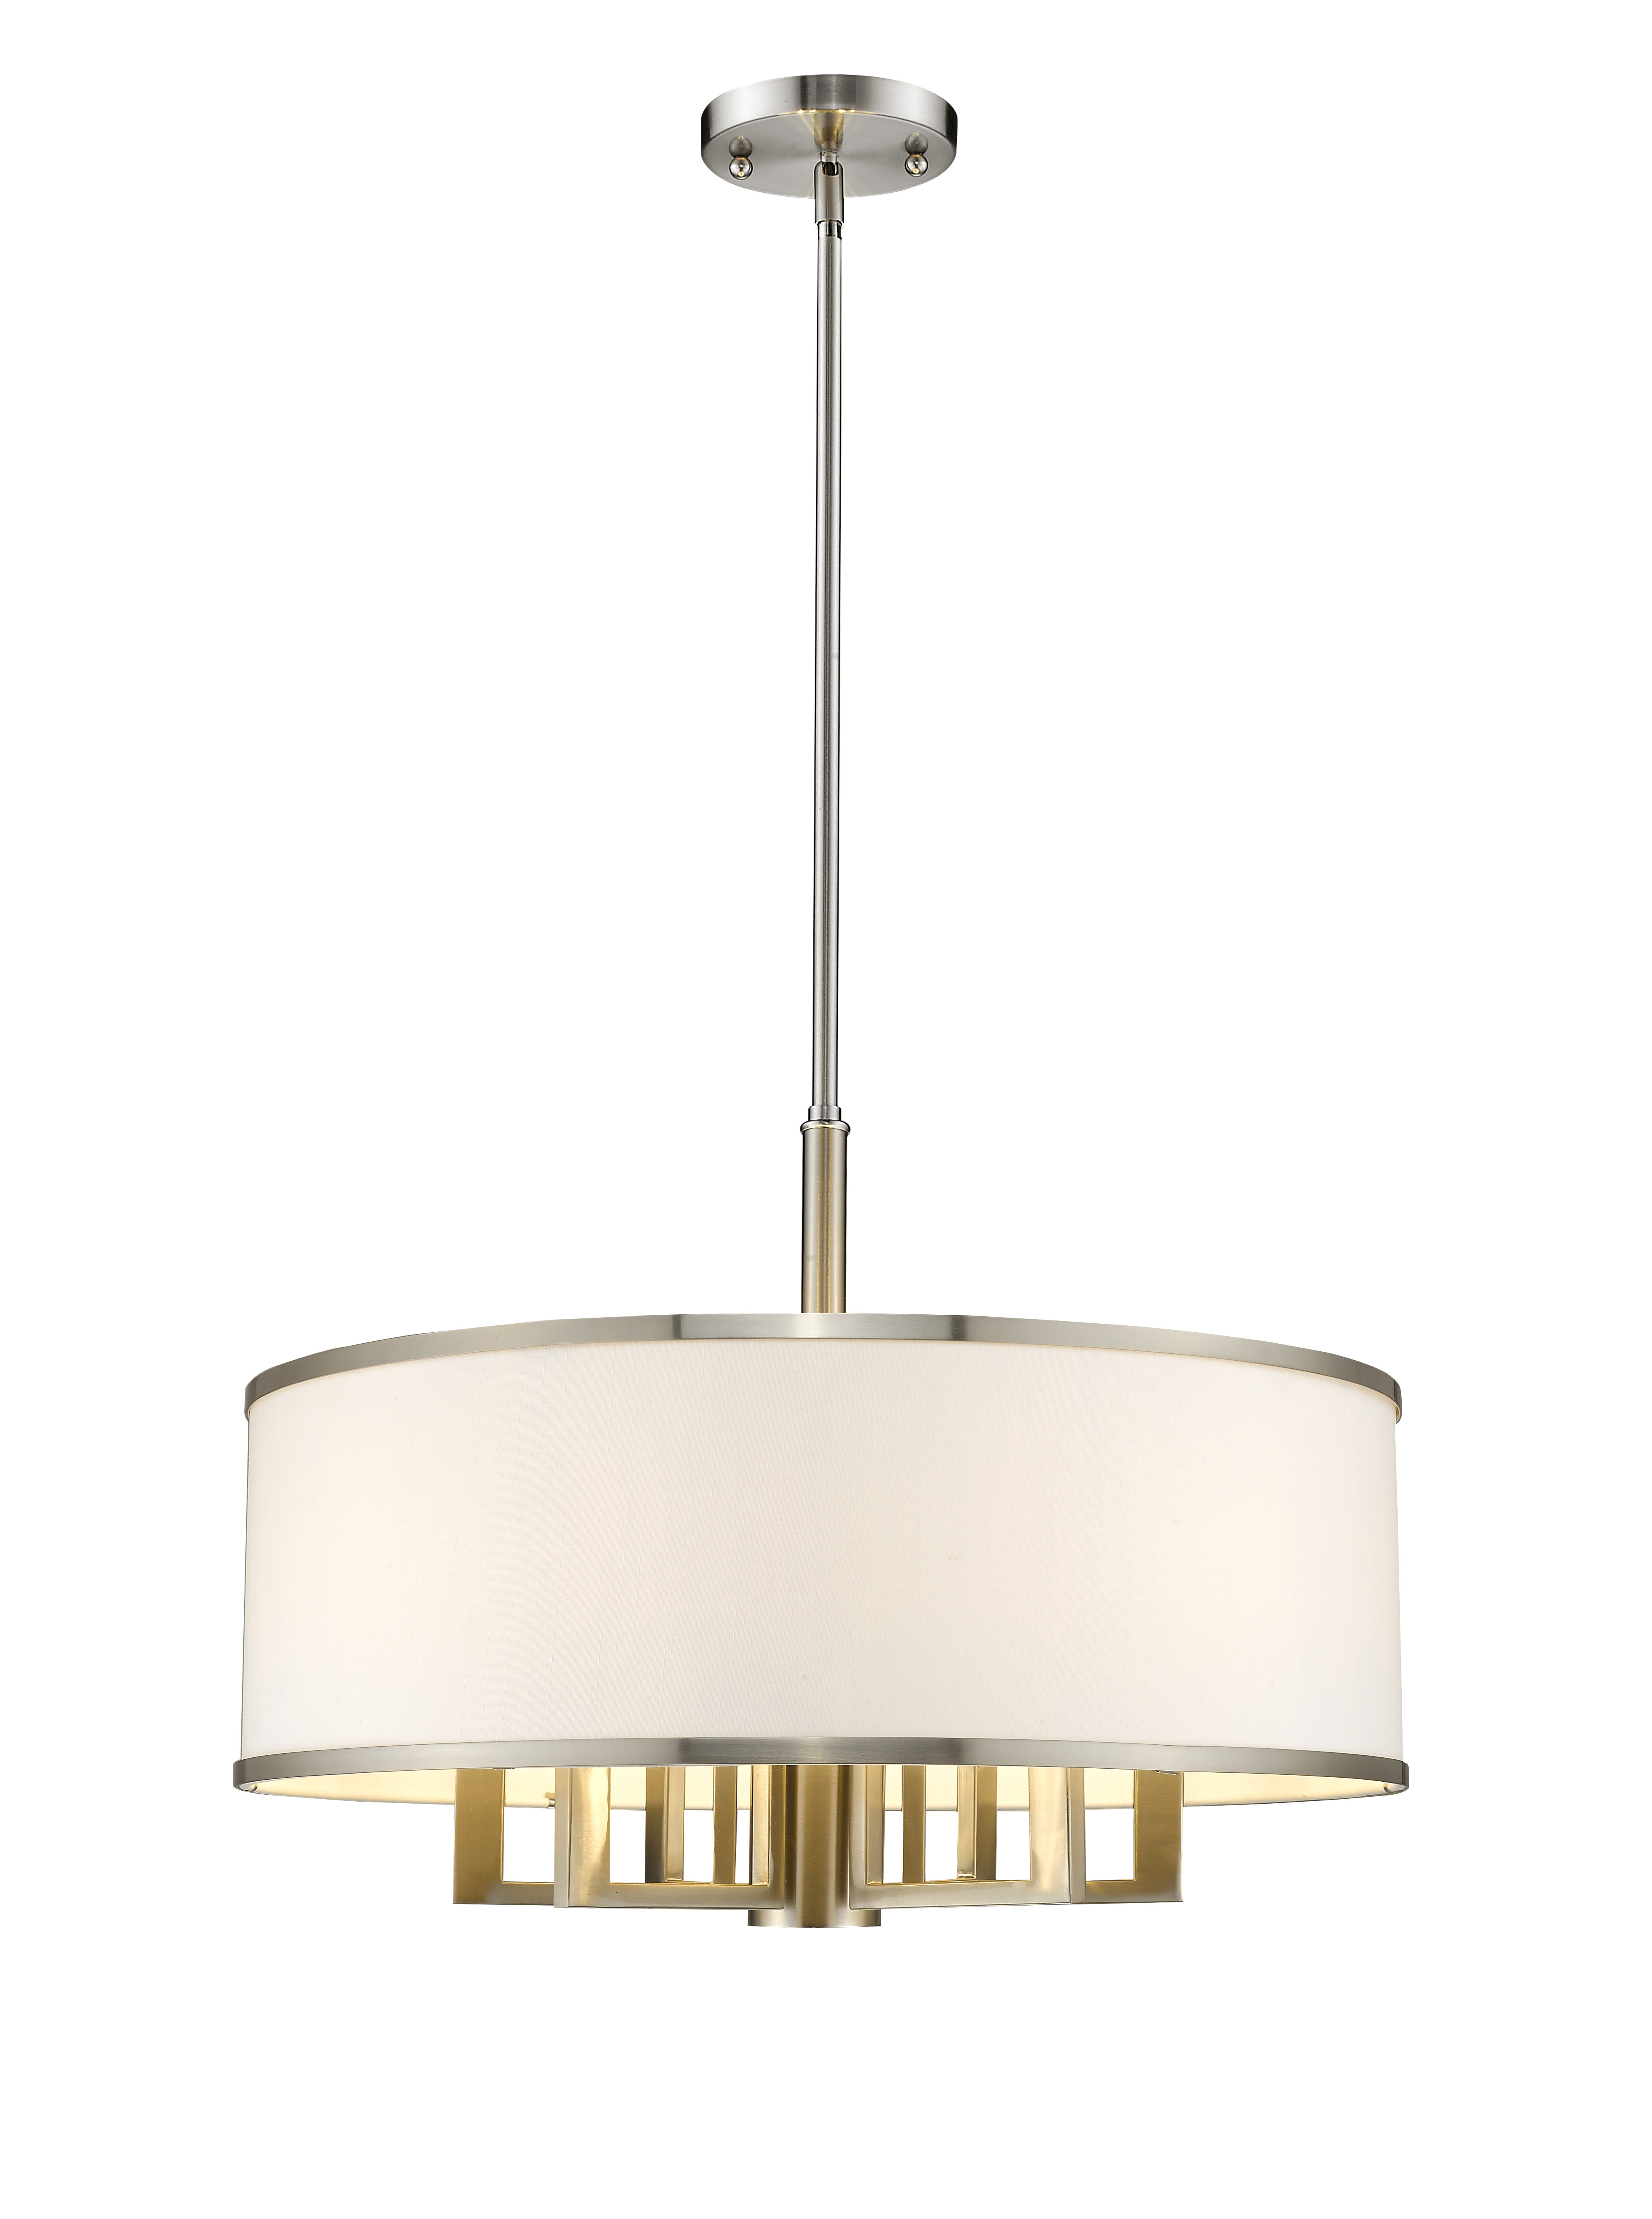 Breithaup 4 Light Drum Chandeliers Intended For Most Recently Released Breithaup 7 Light Drum Chandelier (View 1 of 20)